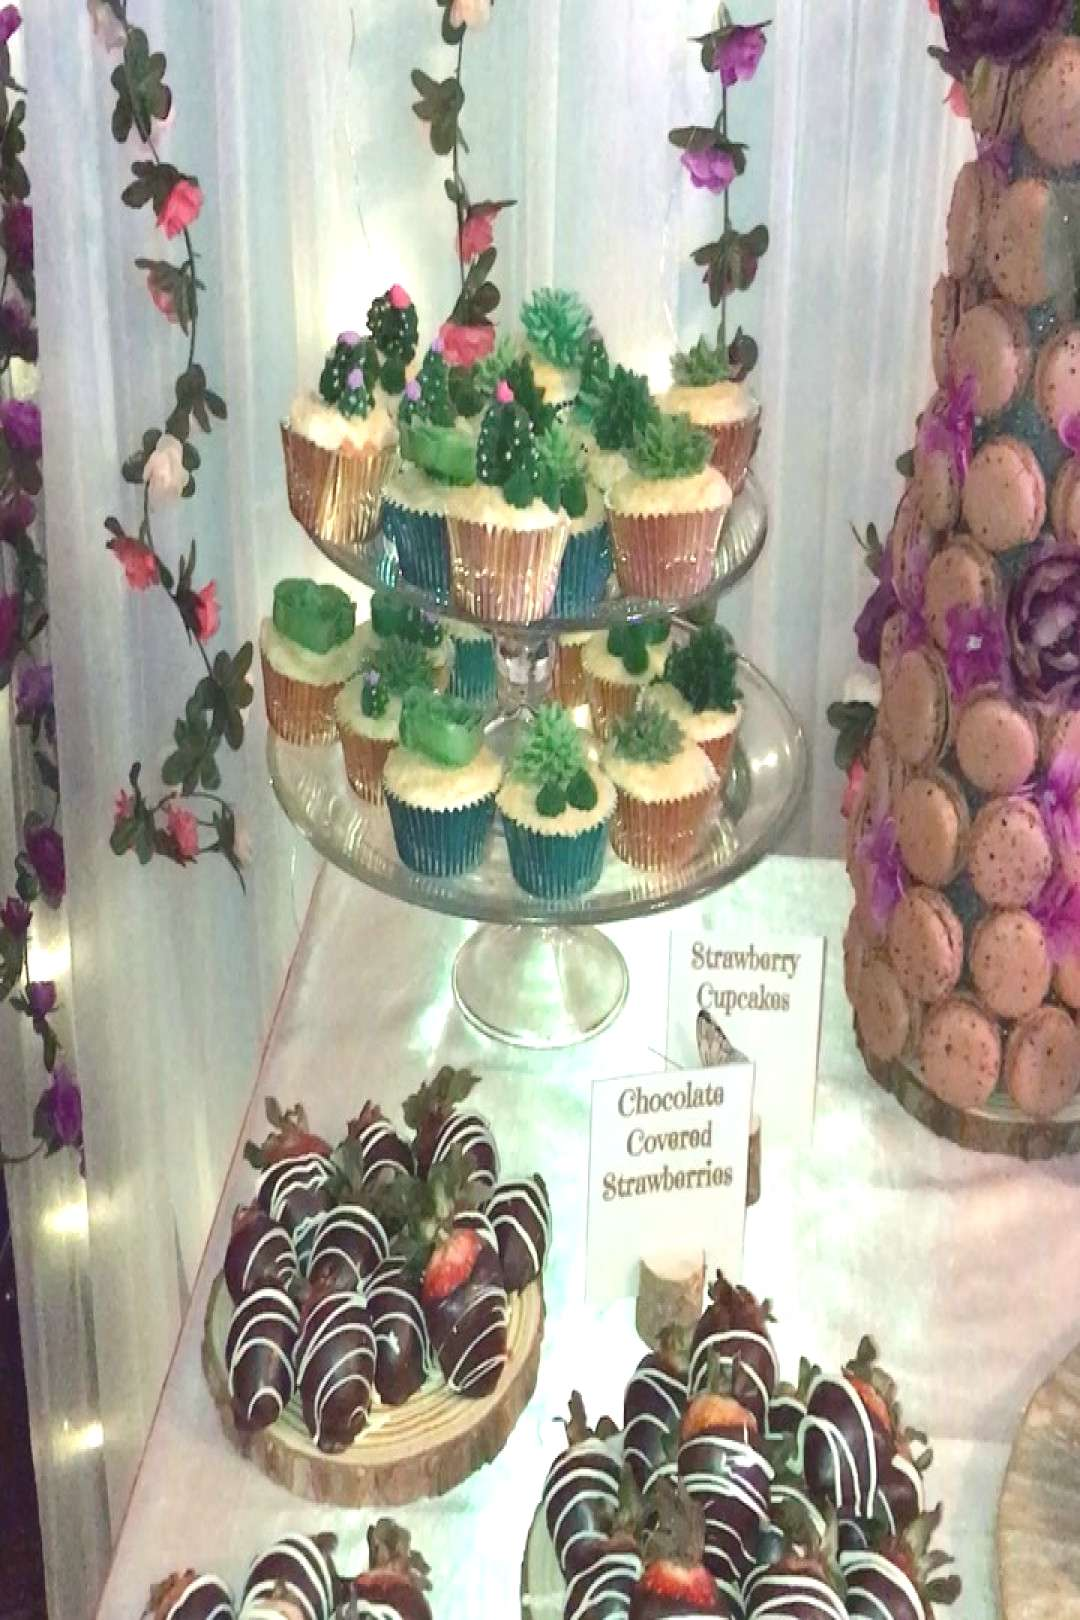 So proud of this sweets table for an enchanted love themed party